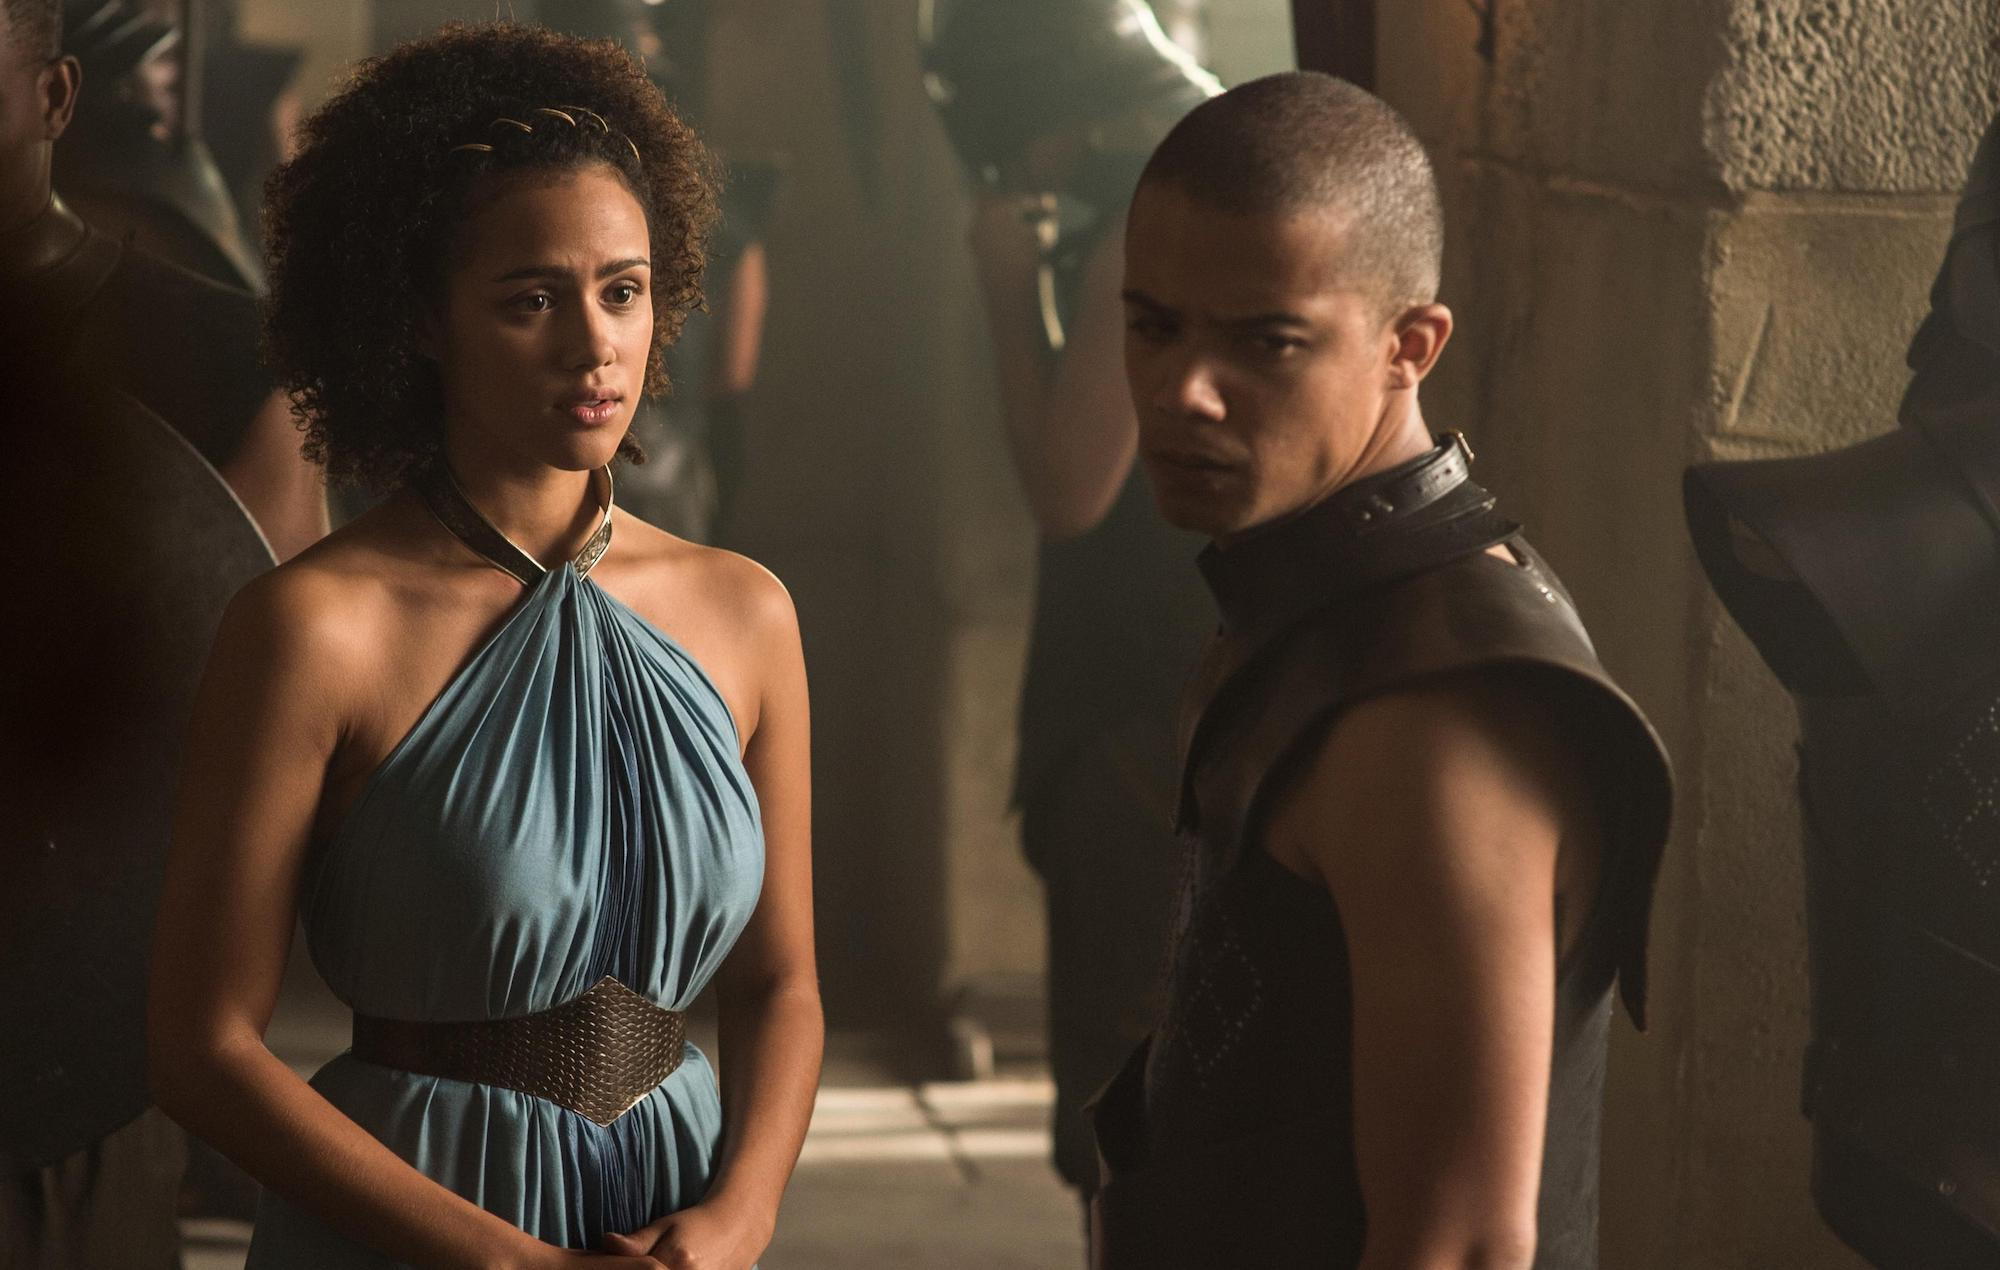 'Game of Thrones' fans confused by Grey Worm scene in season finale